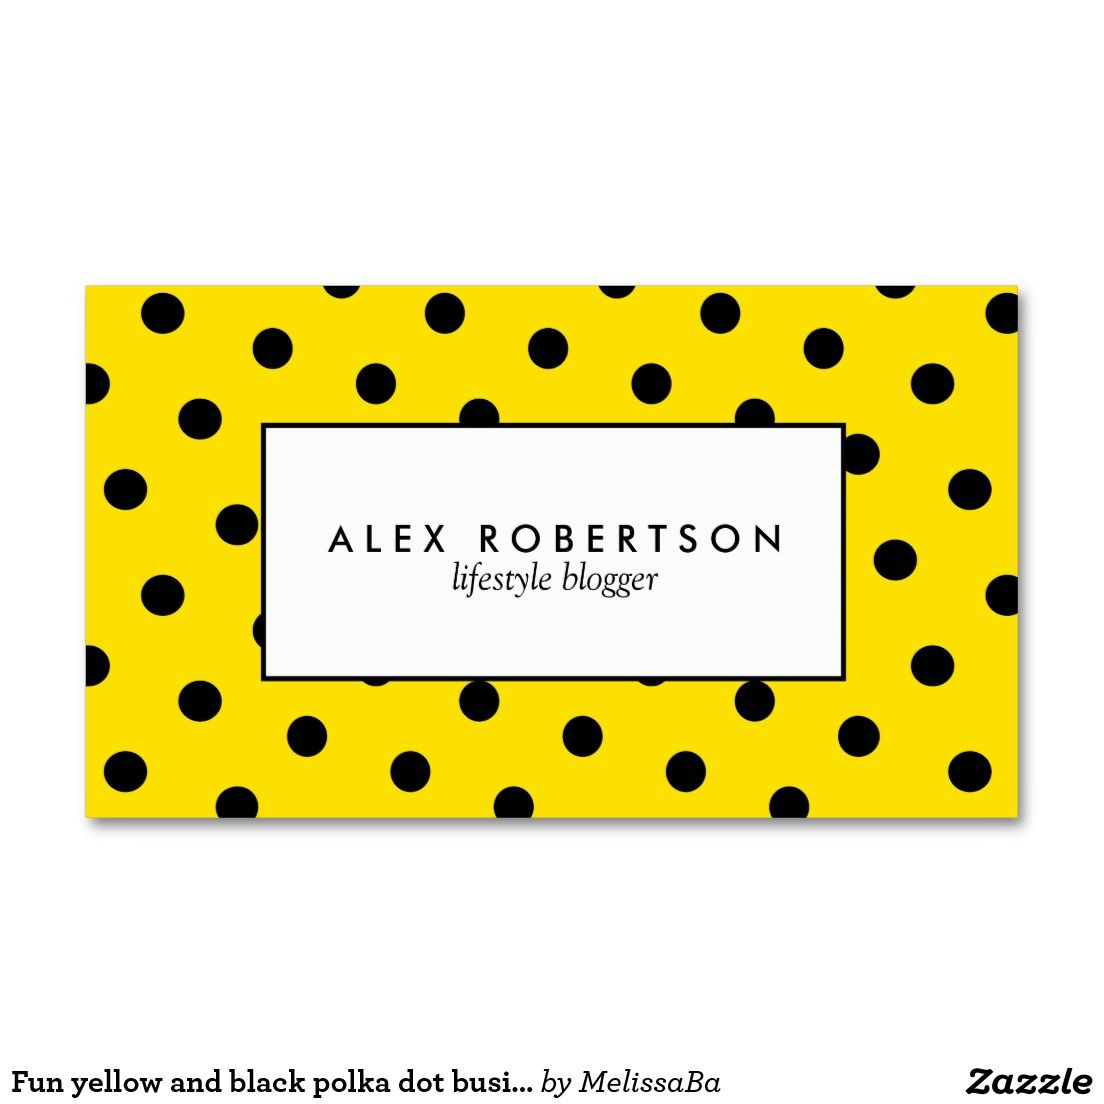 Fun yellow and black polka dot business card | Business Cards ...